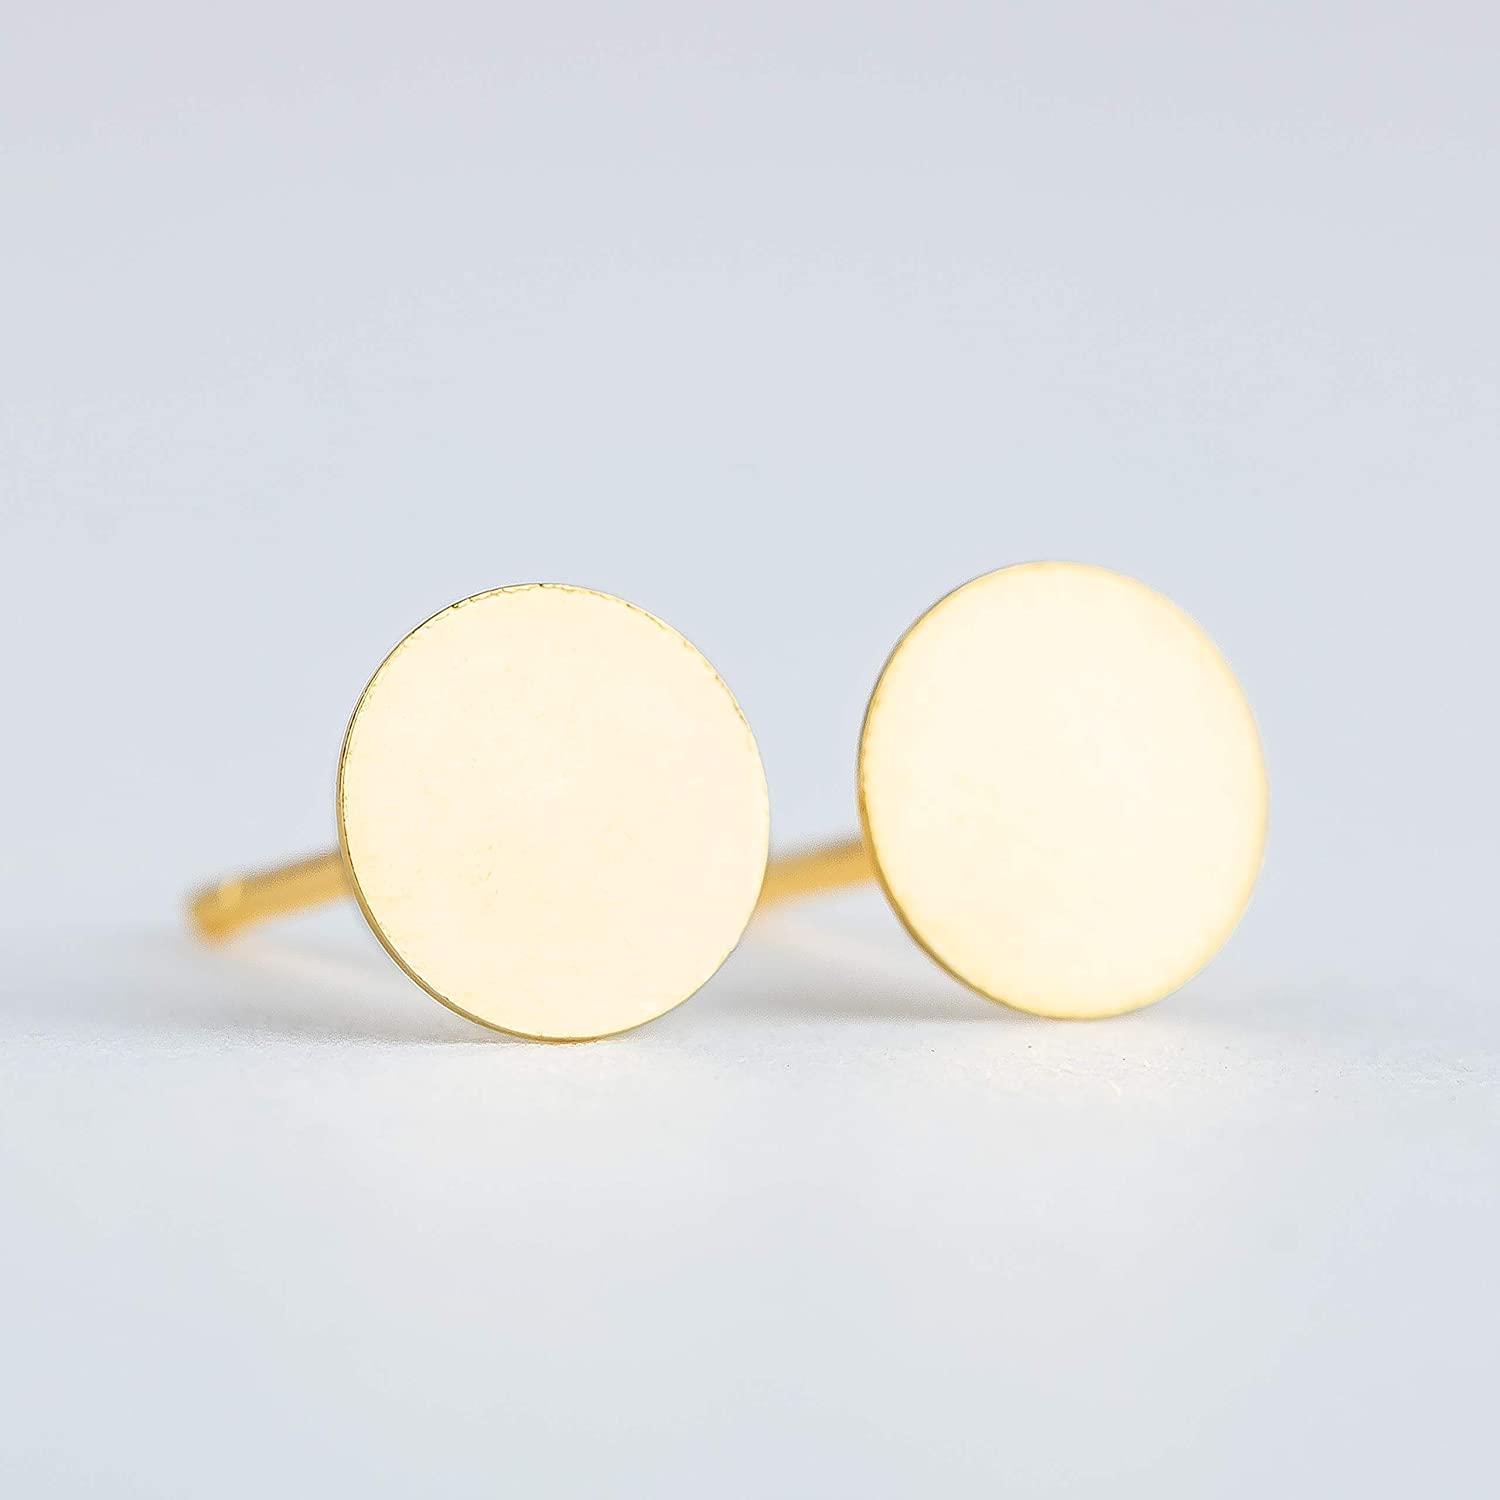 5mm Round Circle Disc Stud Earrings in Gold Vermeil